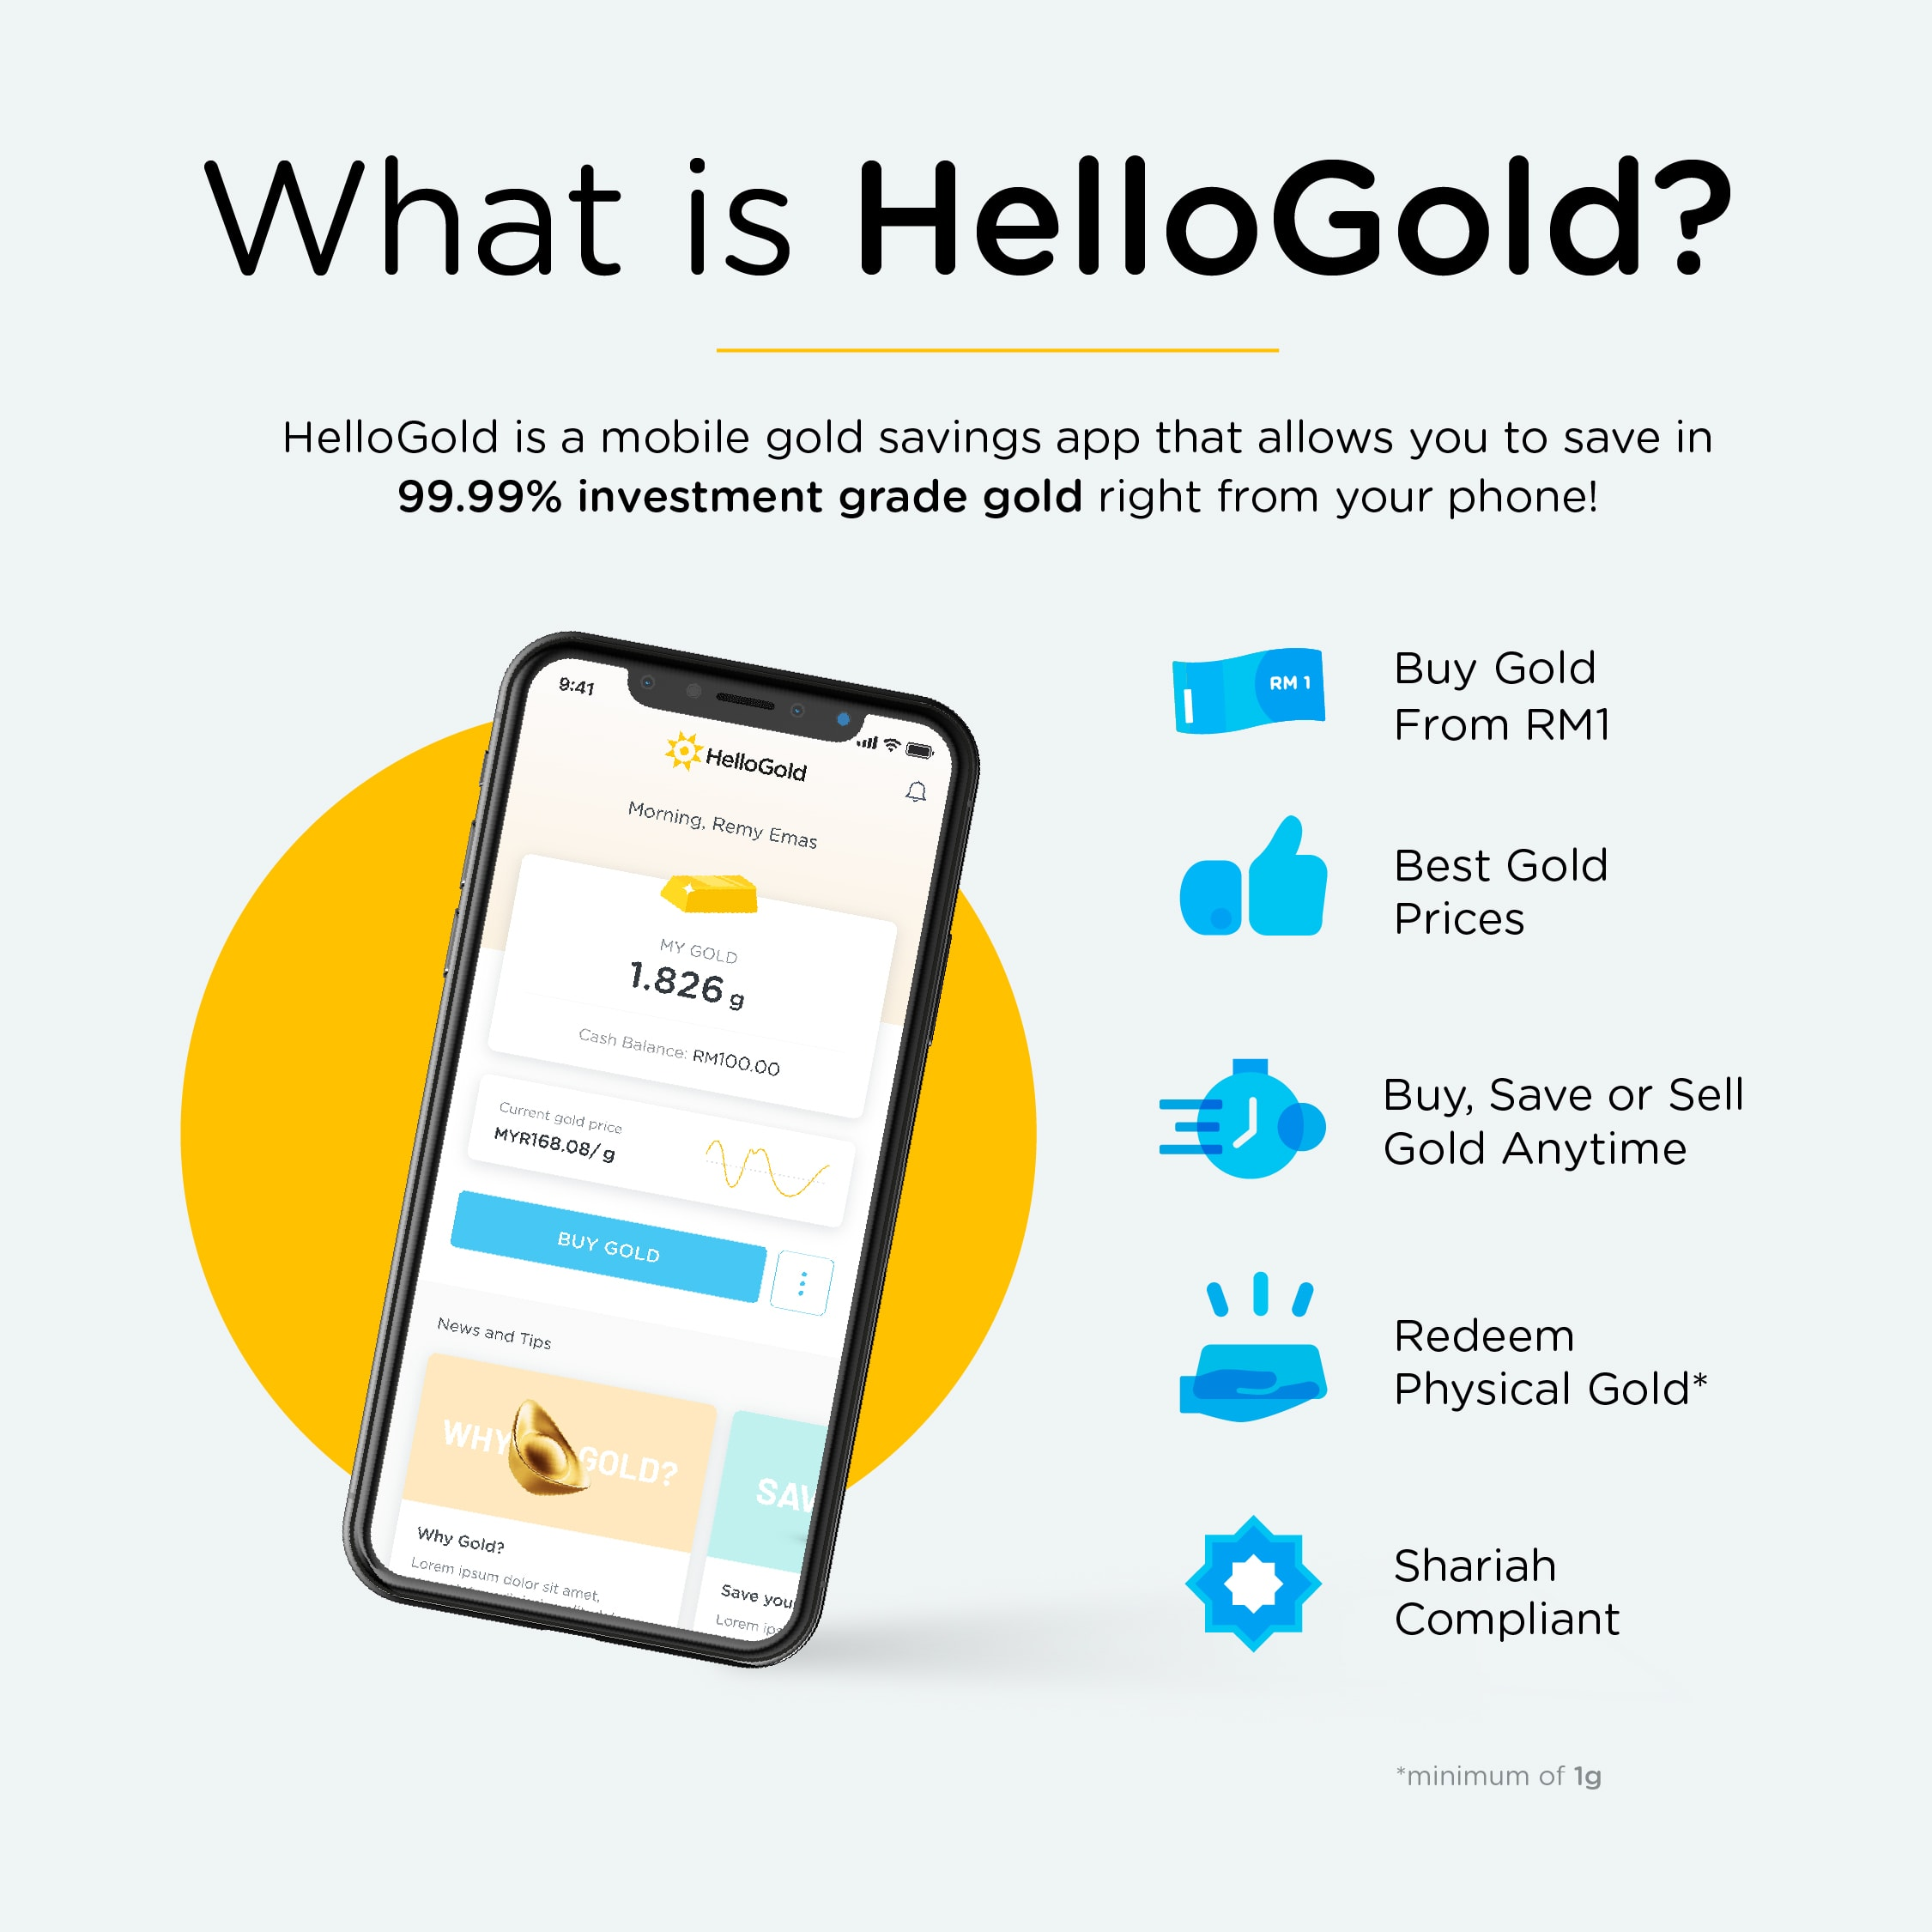 What is HelloGold?